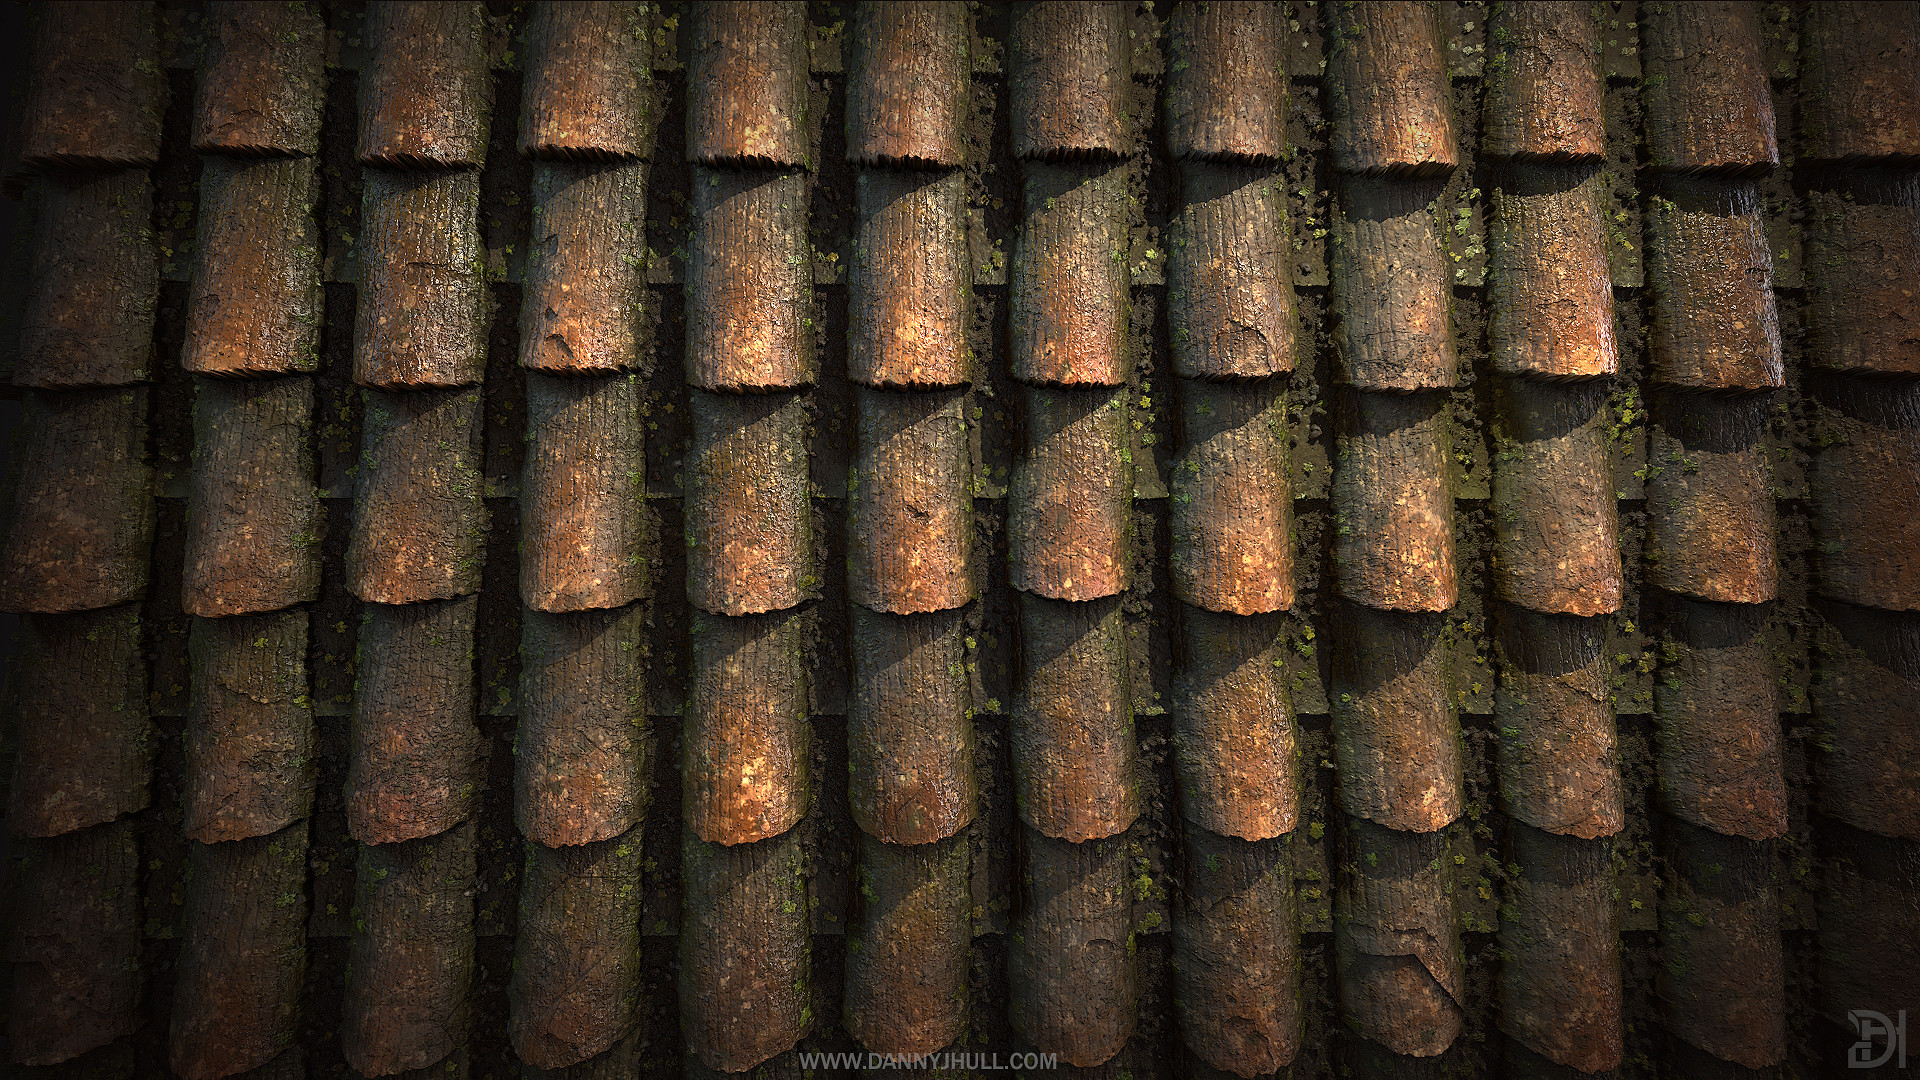 Daniel hull roof tile close up